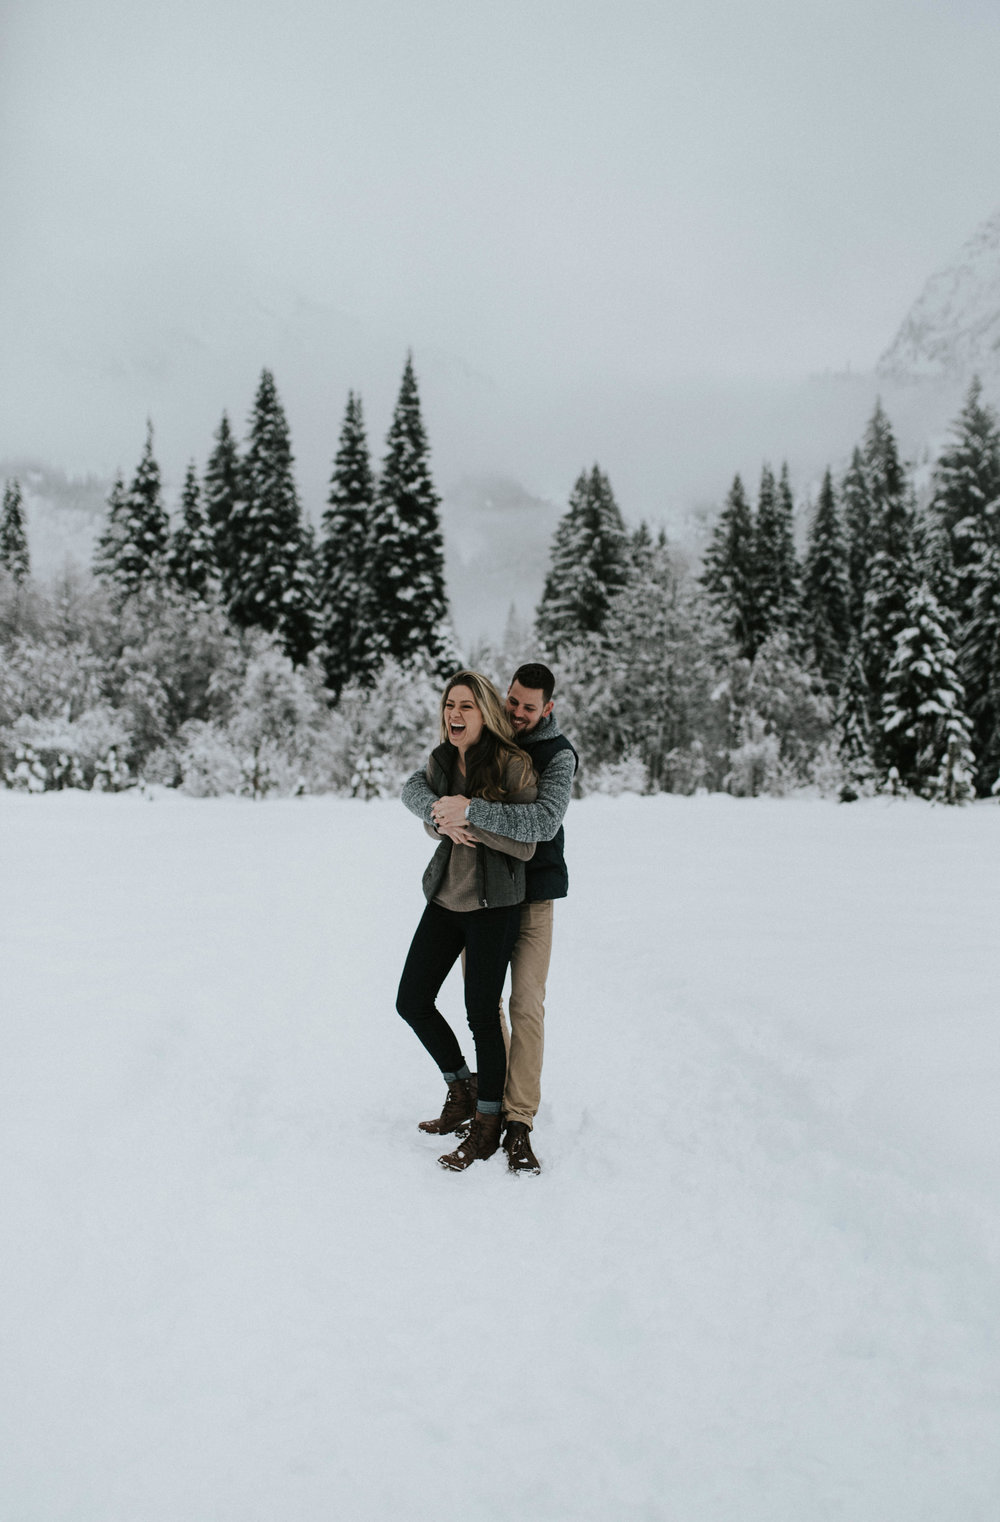 PNW adventure elopement and wedding photographer. North Cascades National Park elopement photographer.